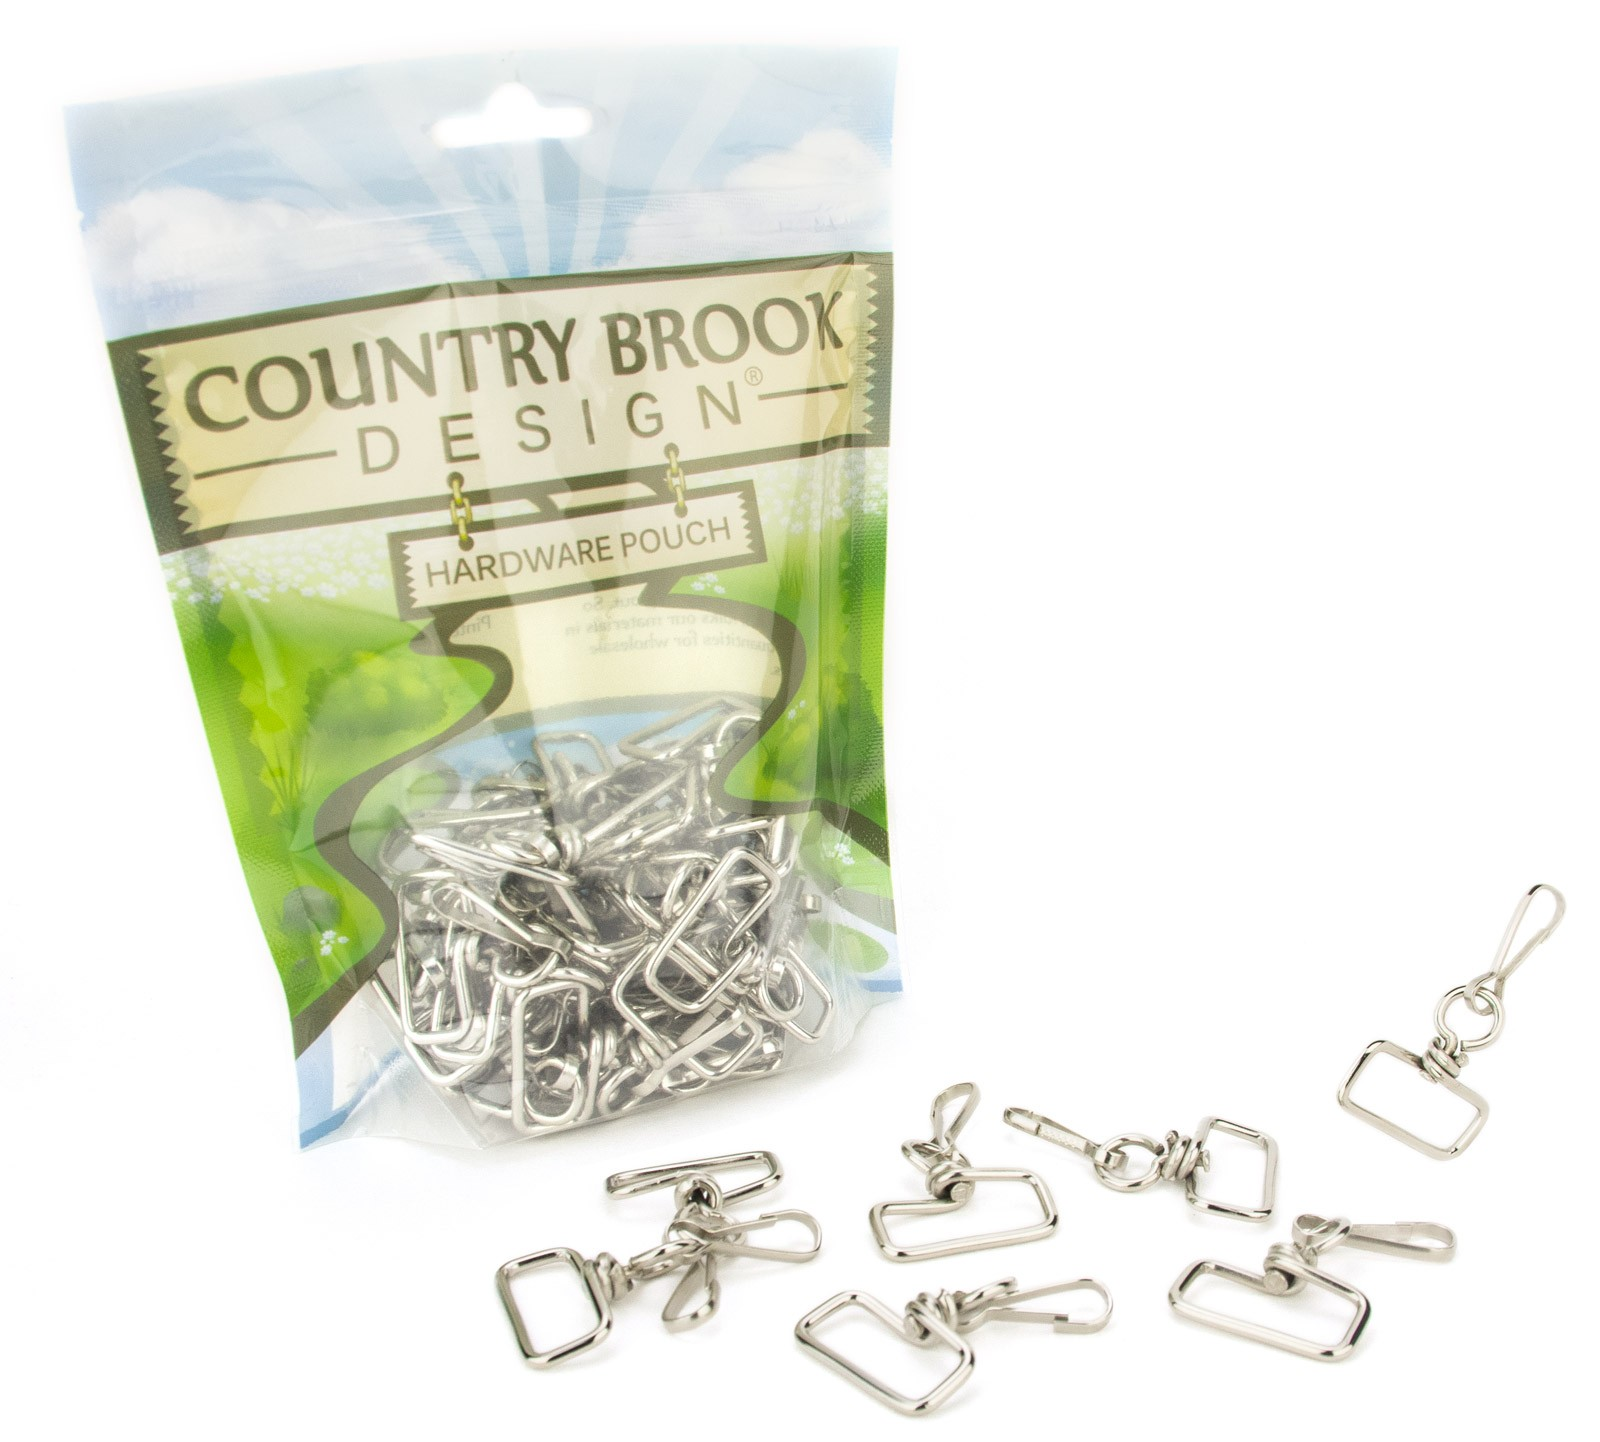 25 Swivel Lanyard Hooks Snap Spring Clips with 1 Inch Square Eye